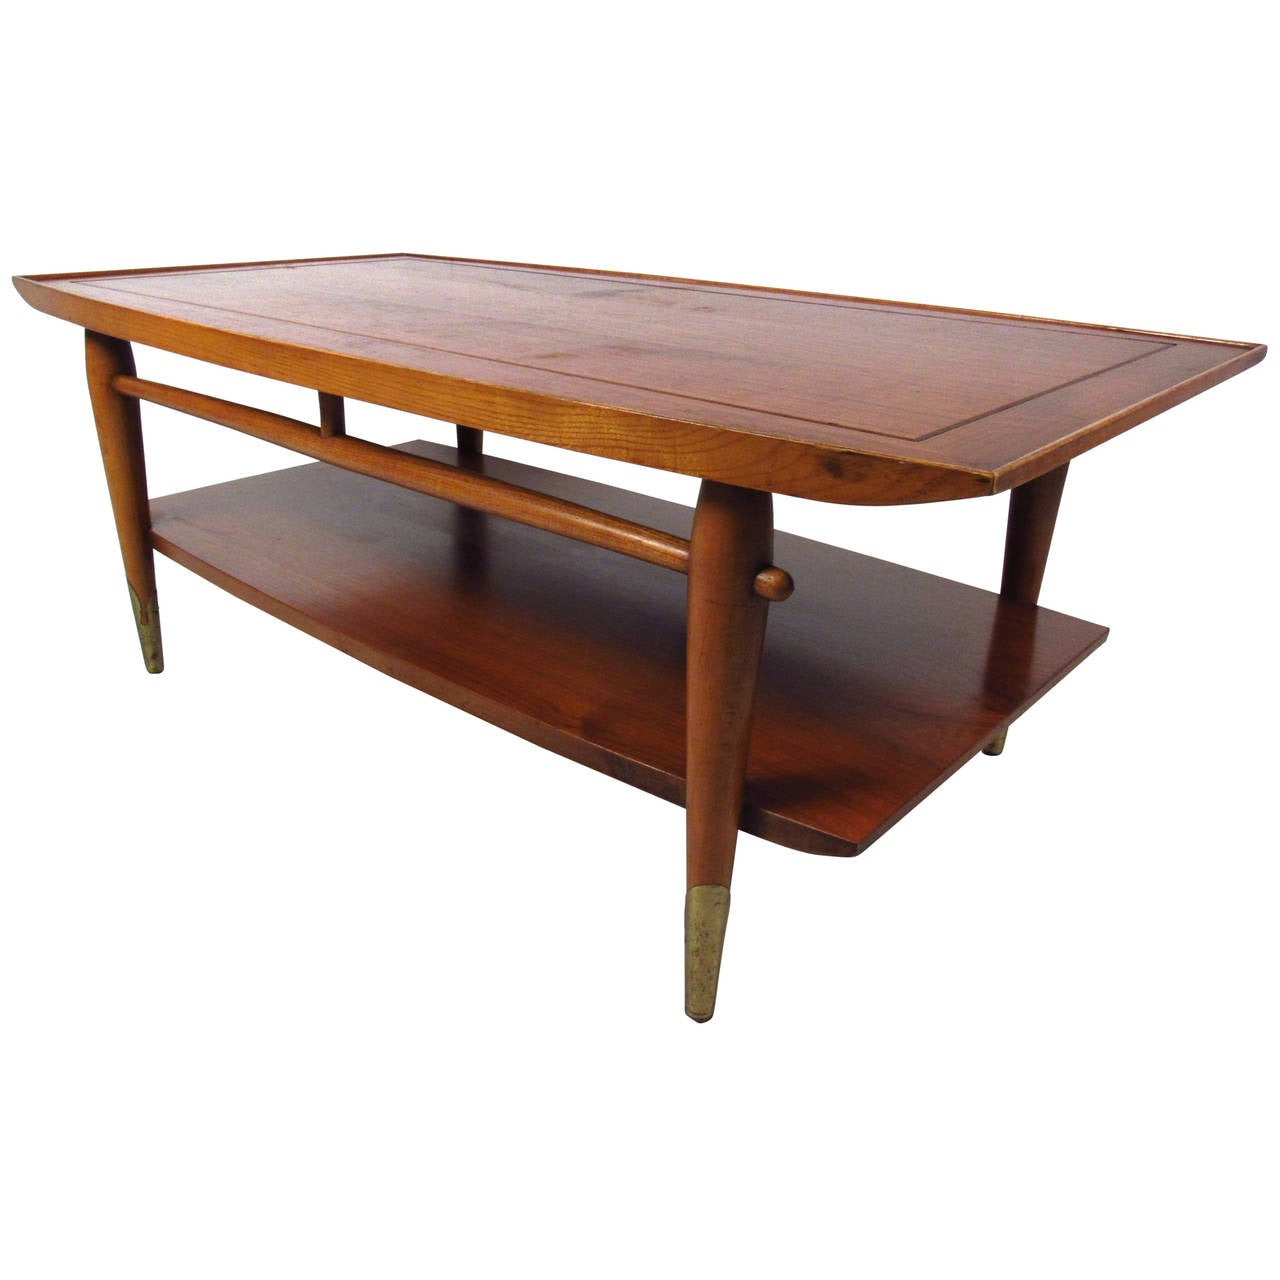 Mid-Century Modern Two-Tier Lane Coffee Table - Mid-Century Modern Lane